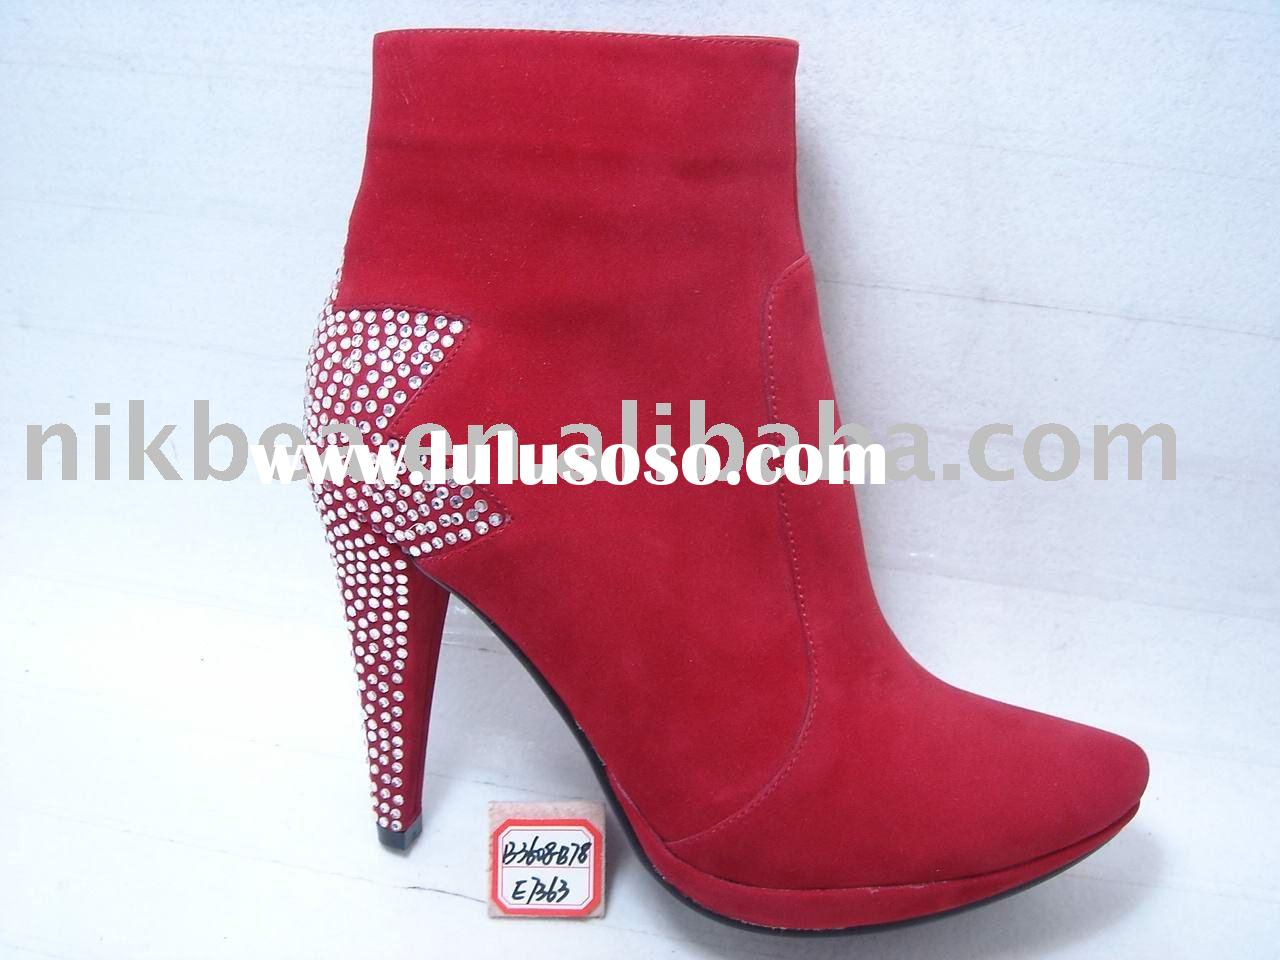 fashion latest new design high quality high heel woman boots and shoes for wholesale